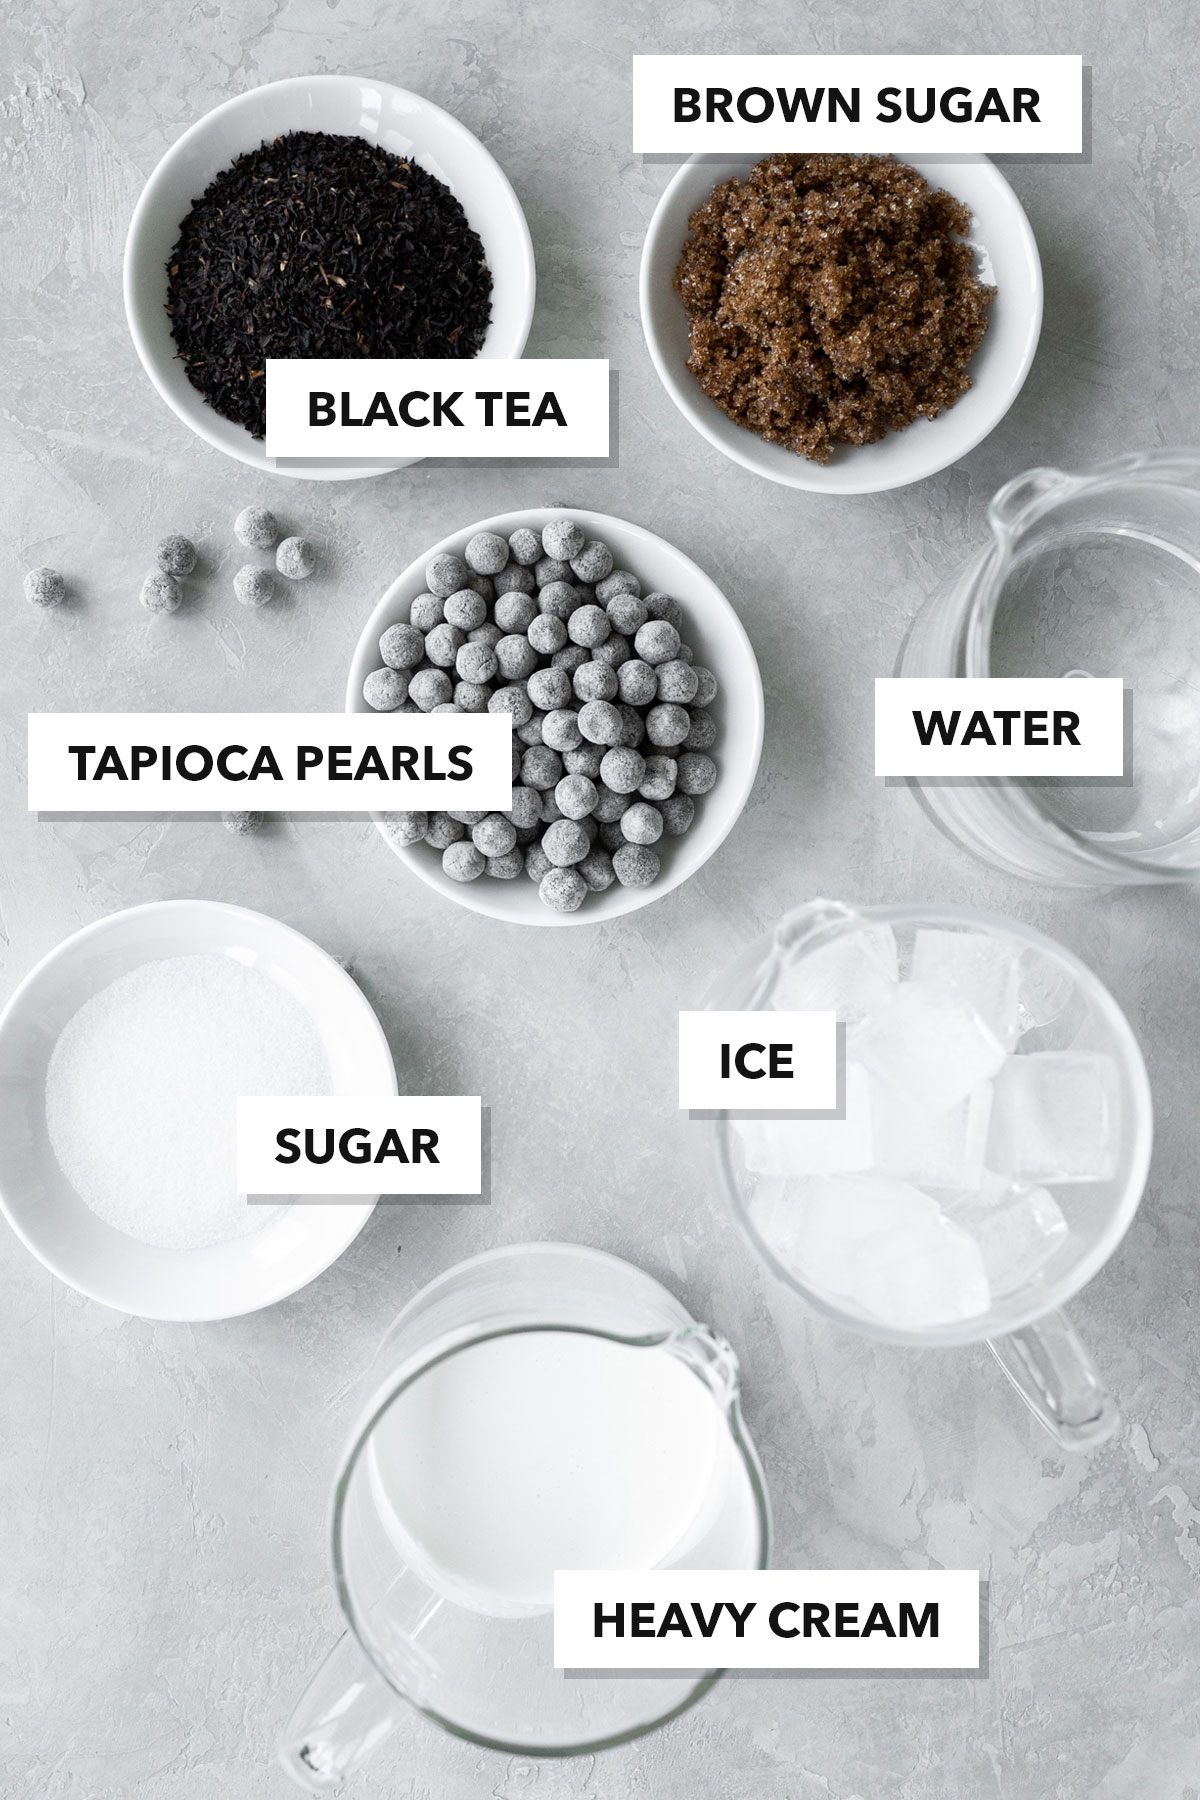 Bubble tea ingredients in individual plates and containers.